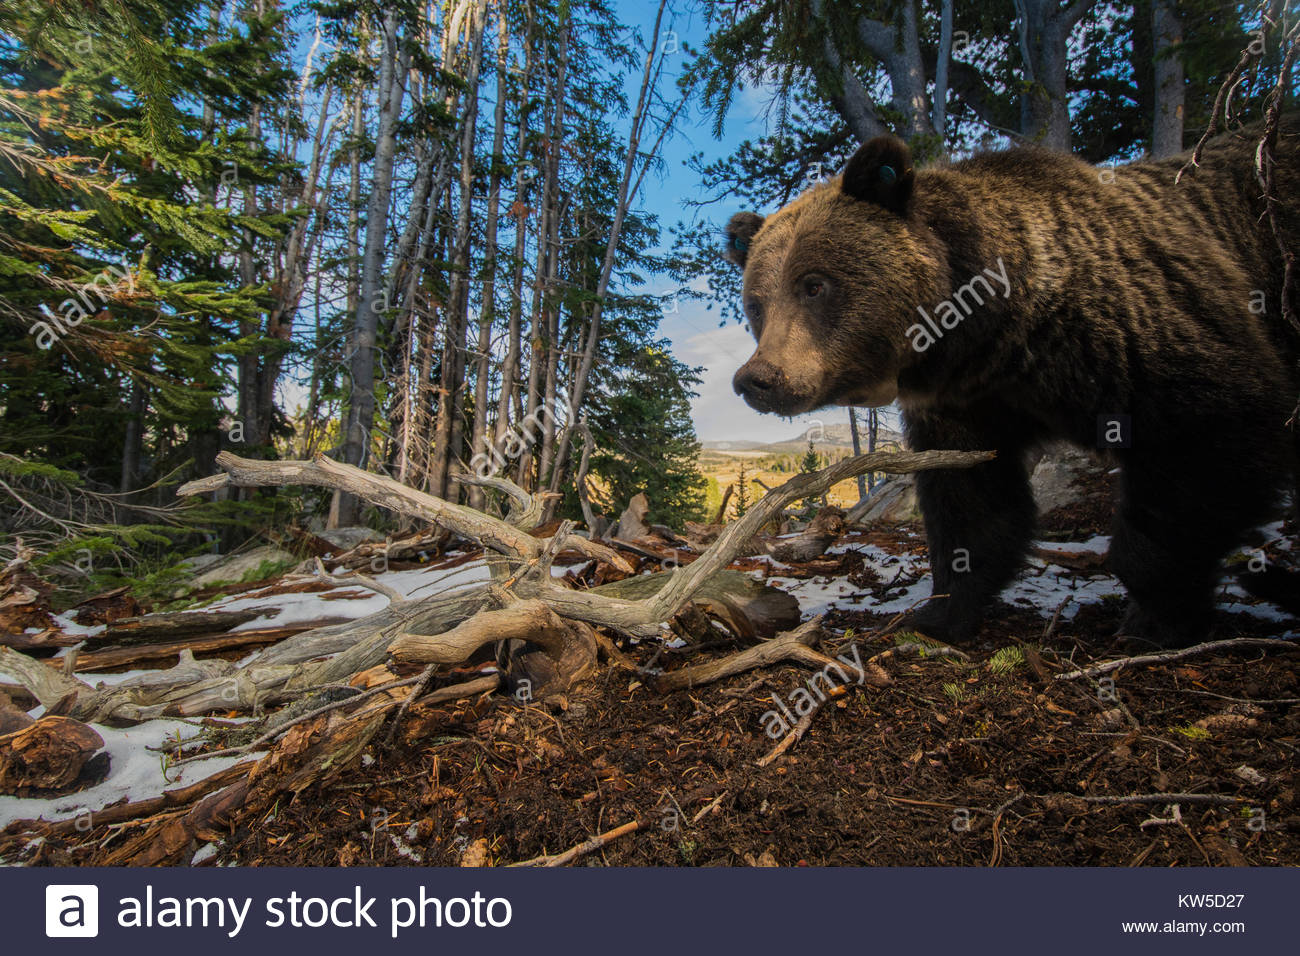 A remote camera captures a grizzly bear foraging for whitebark pinecones in Wyoming's Greater Yellowstone Ecosystem. - Stock Image